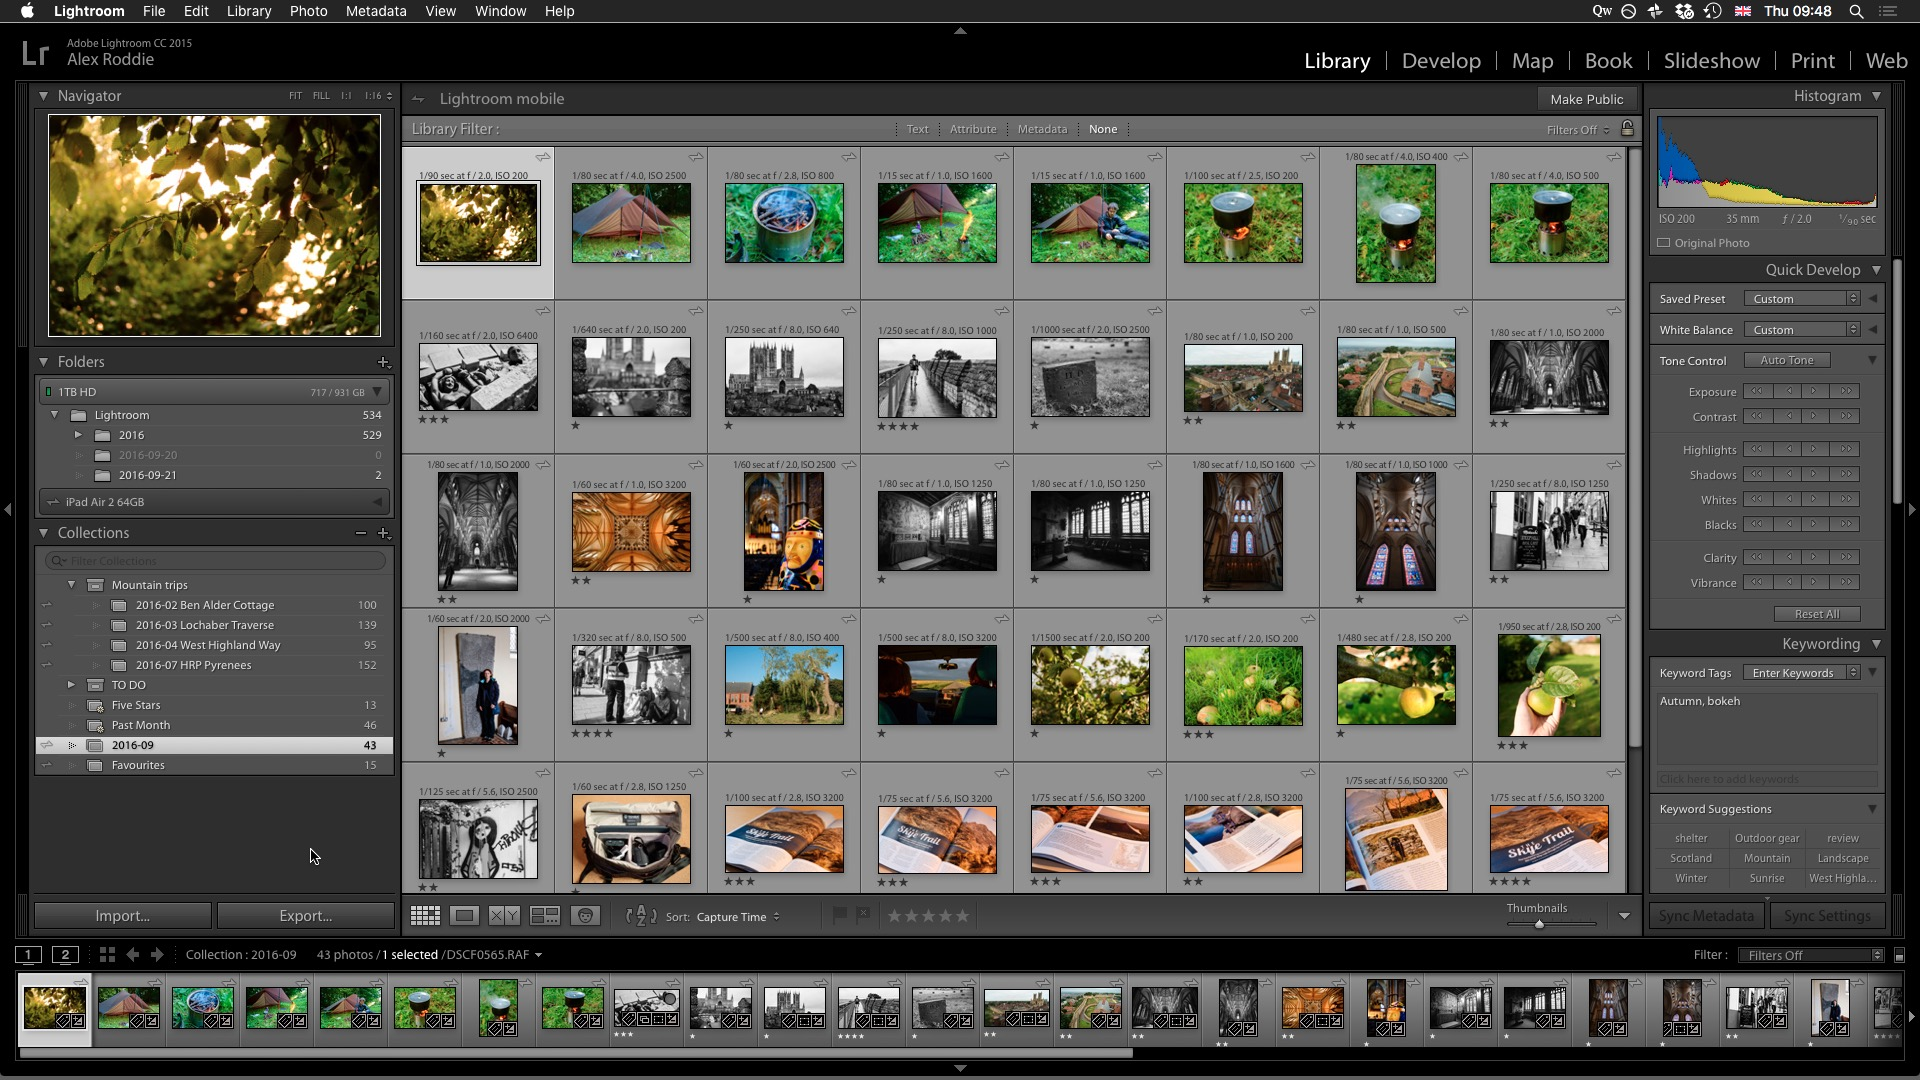 Lightroom on the Mac